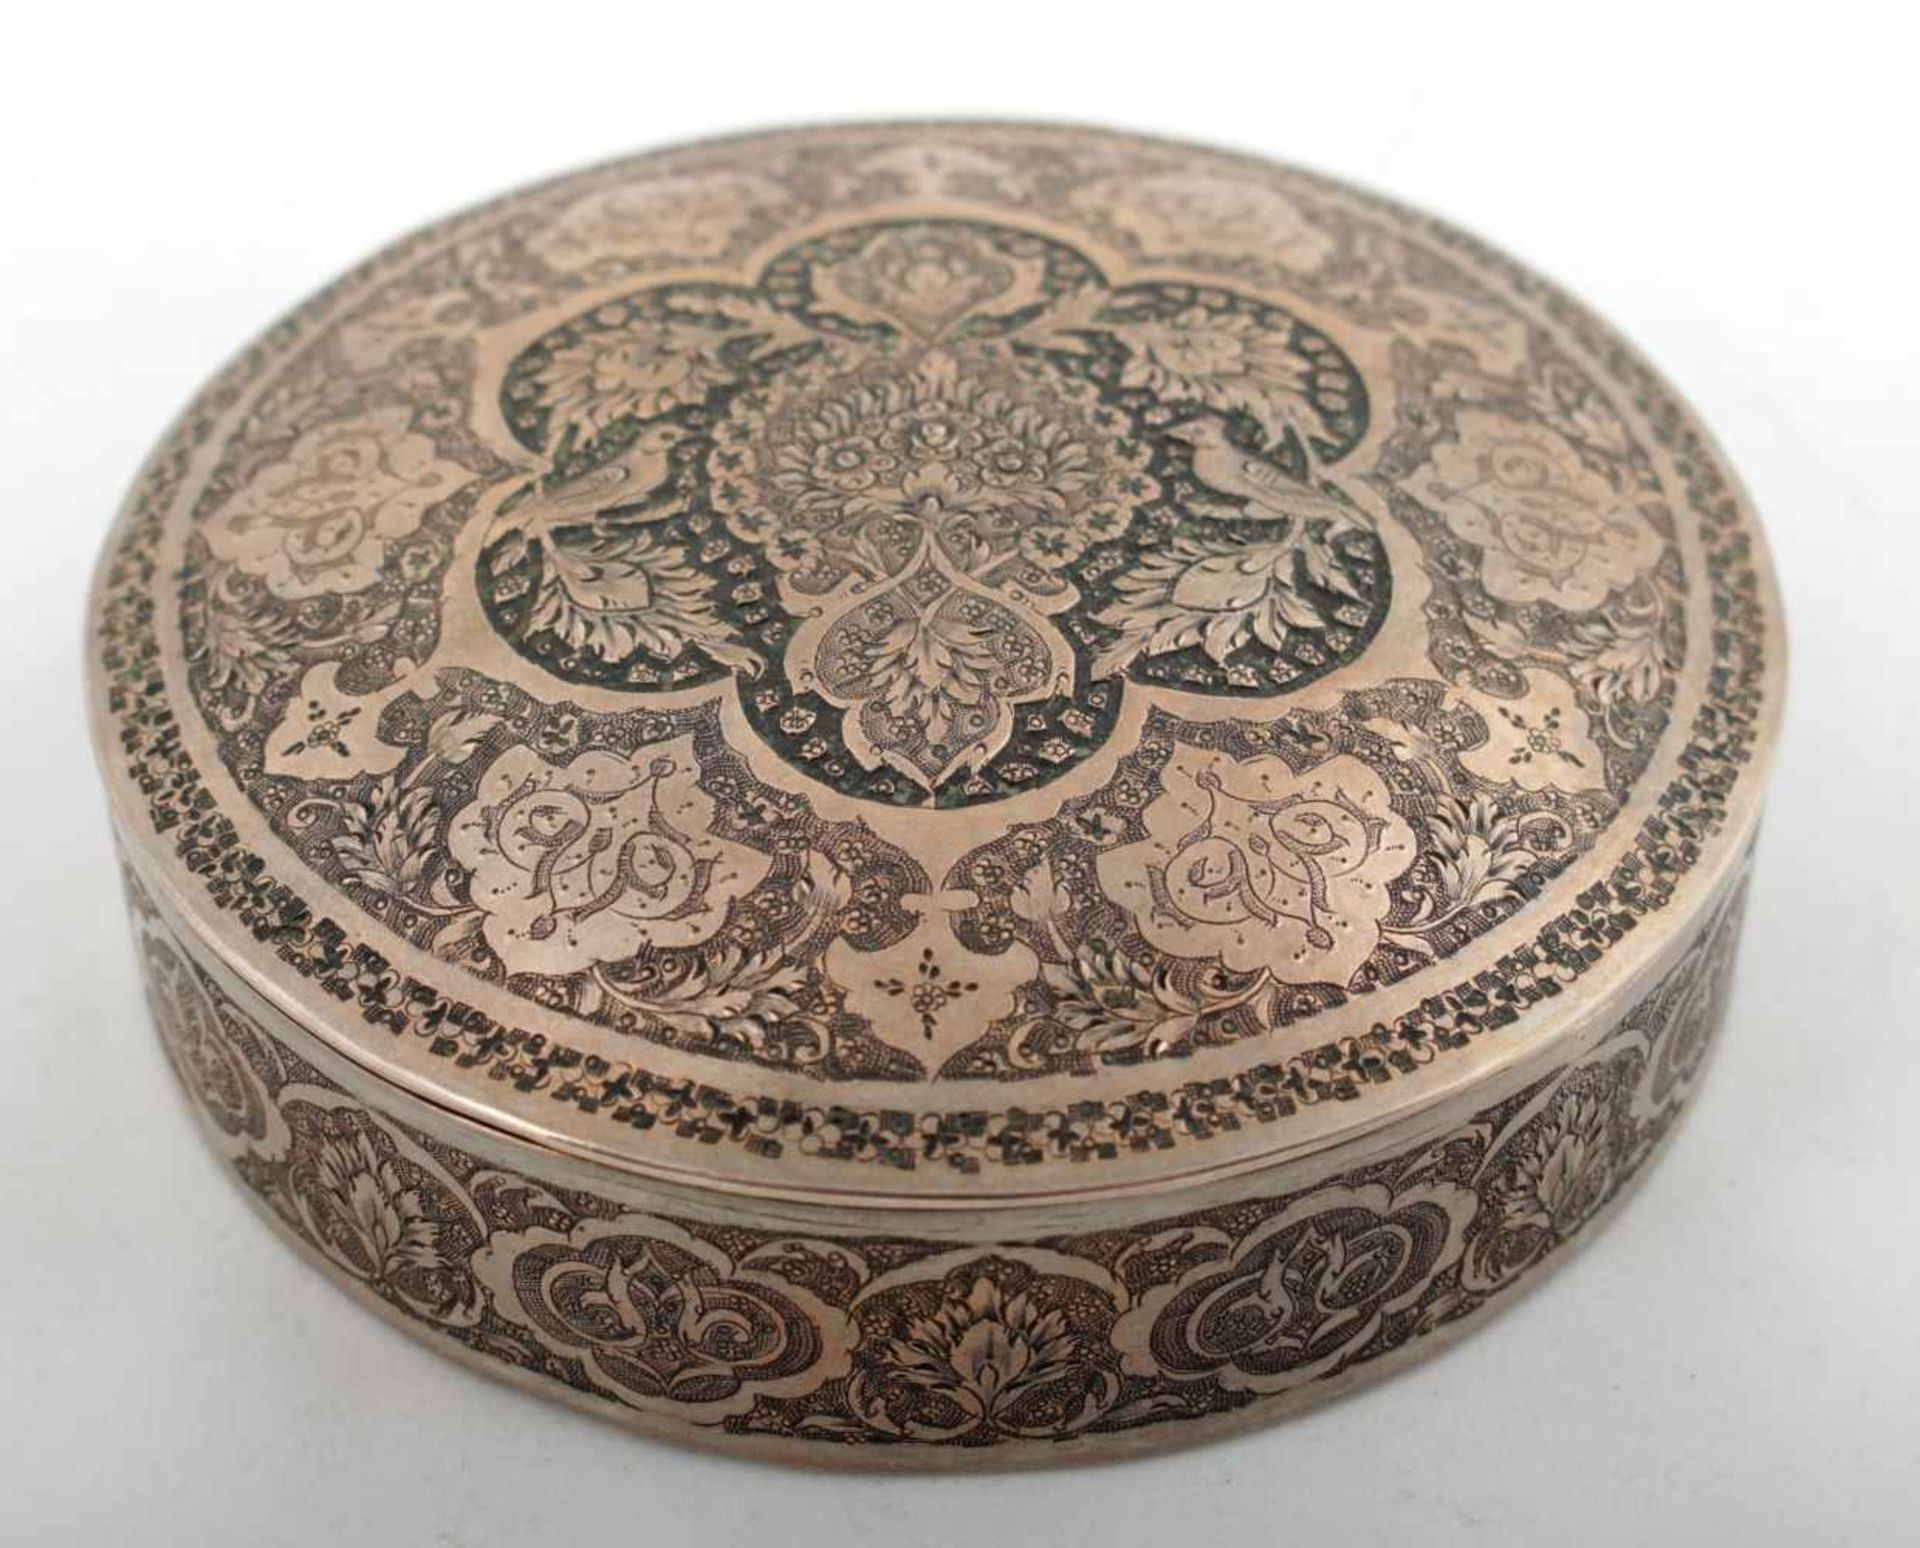 Persian silver box Persia, 1st third of the 20th century, silver box, birds and flowers relief